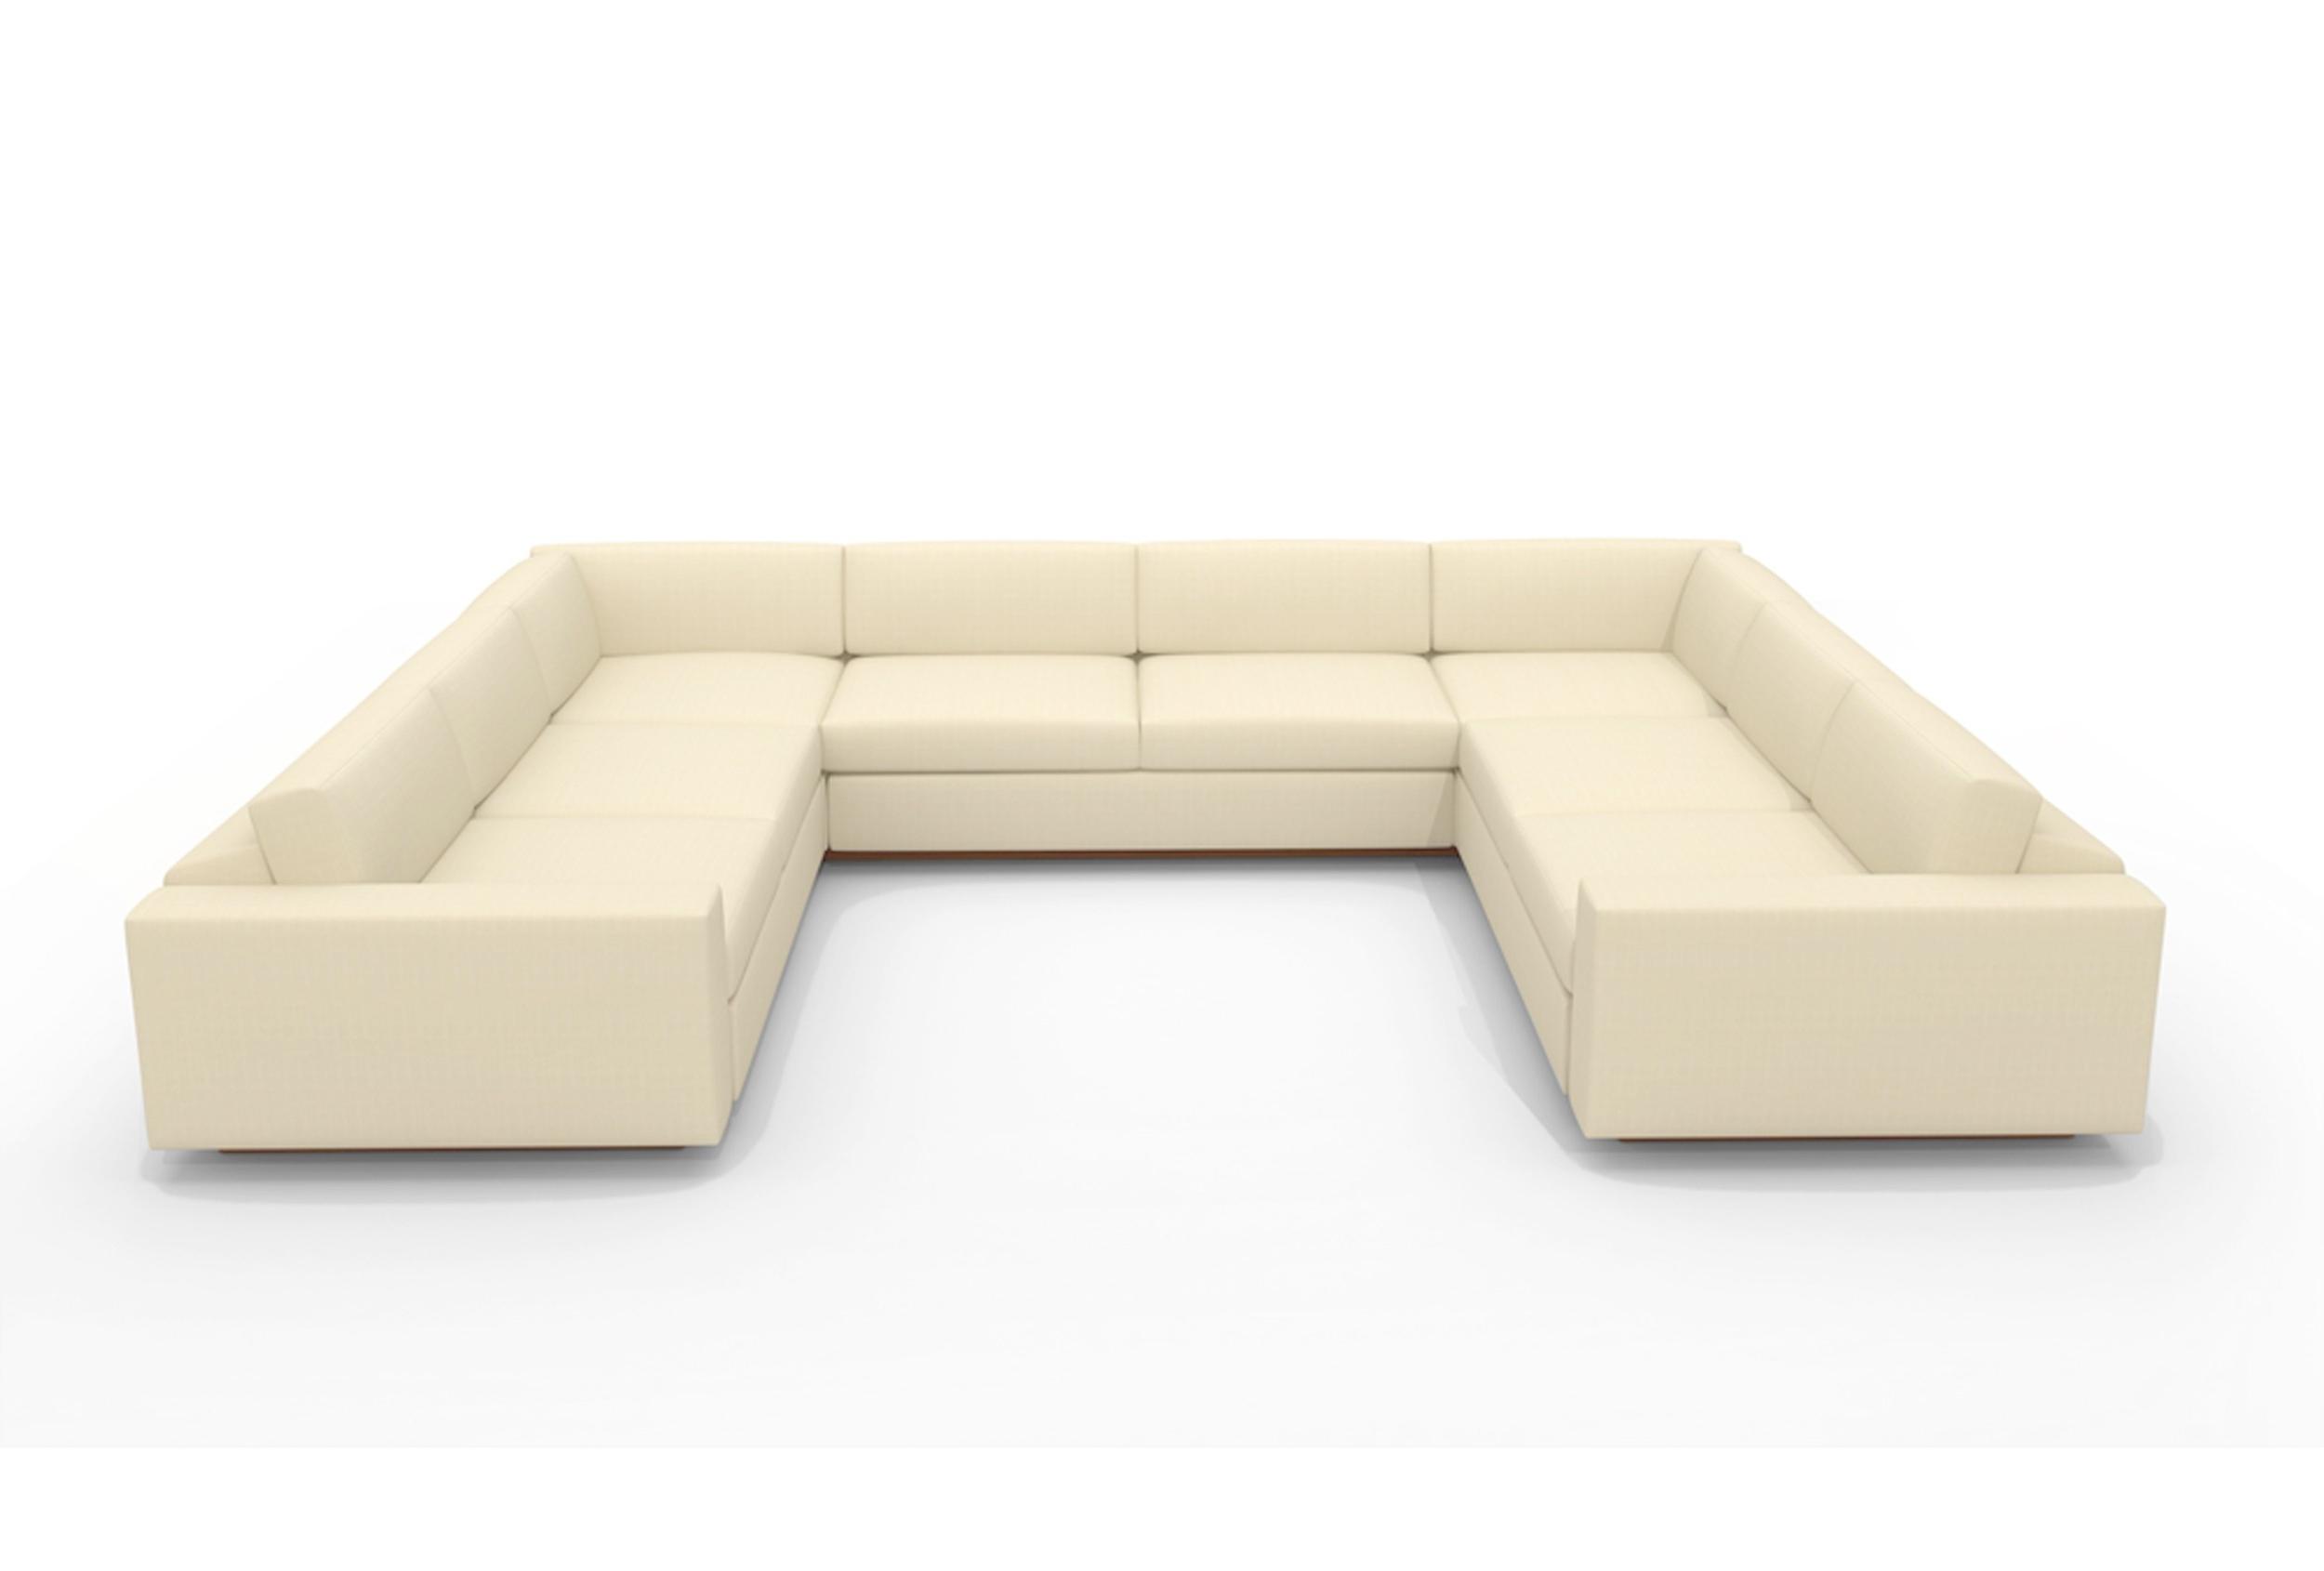 U Shaped White Leather Sectional Sofa With Back And Arm Of With Regard To Fashionable Modern U Shaped Sectional Sofas (Gallery 12 of 20)